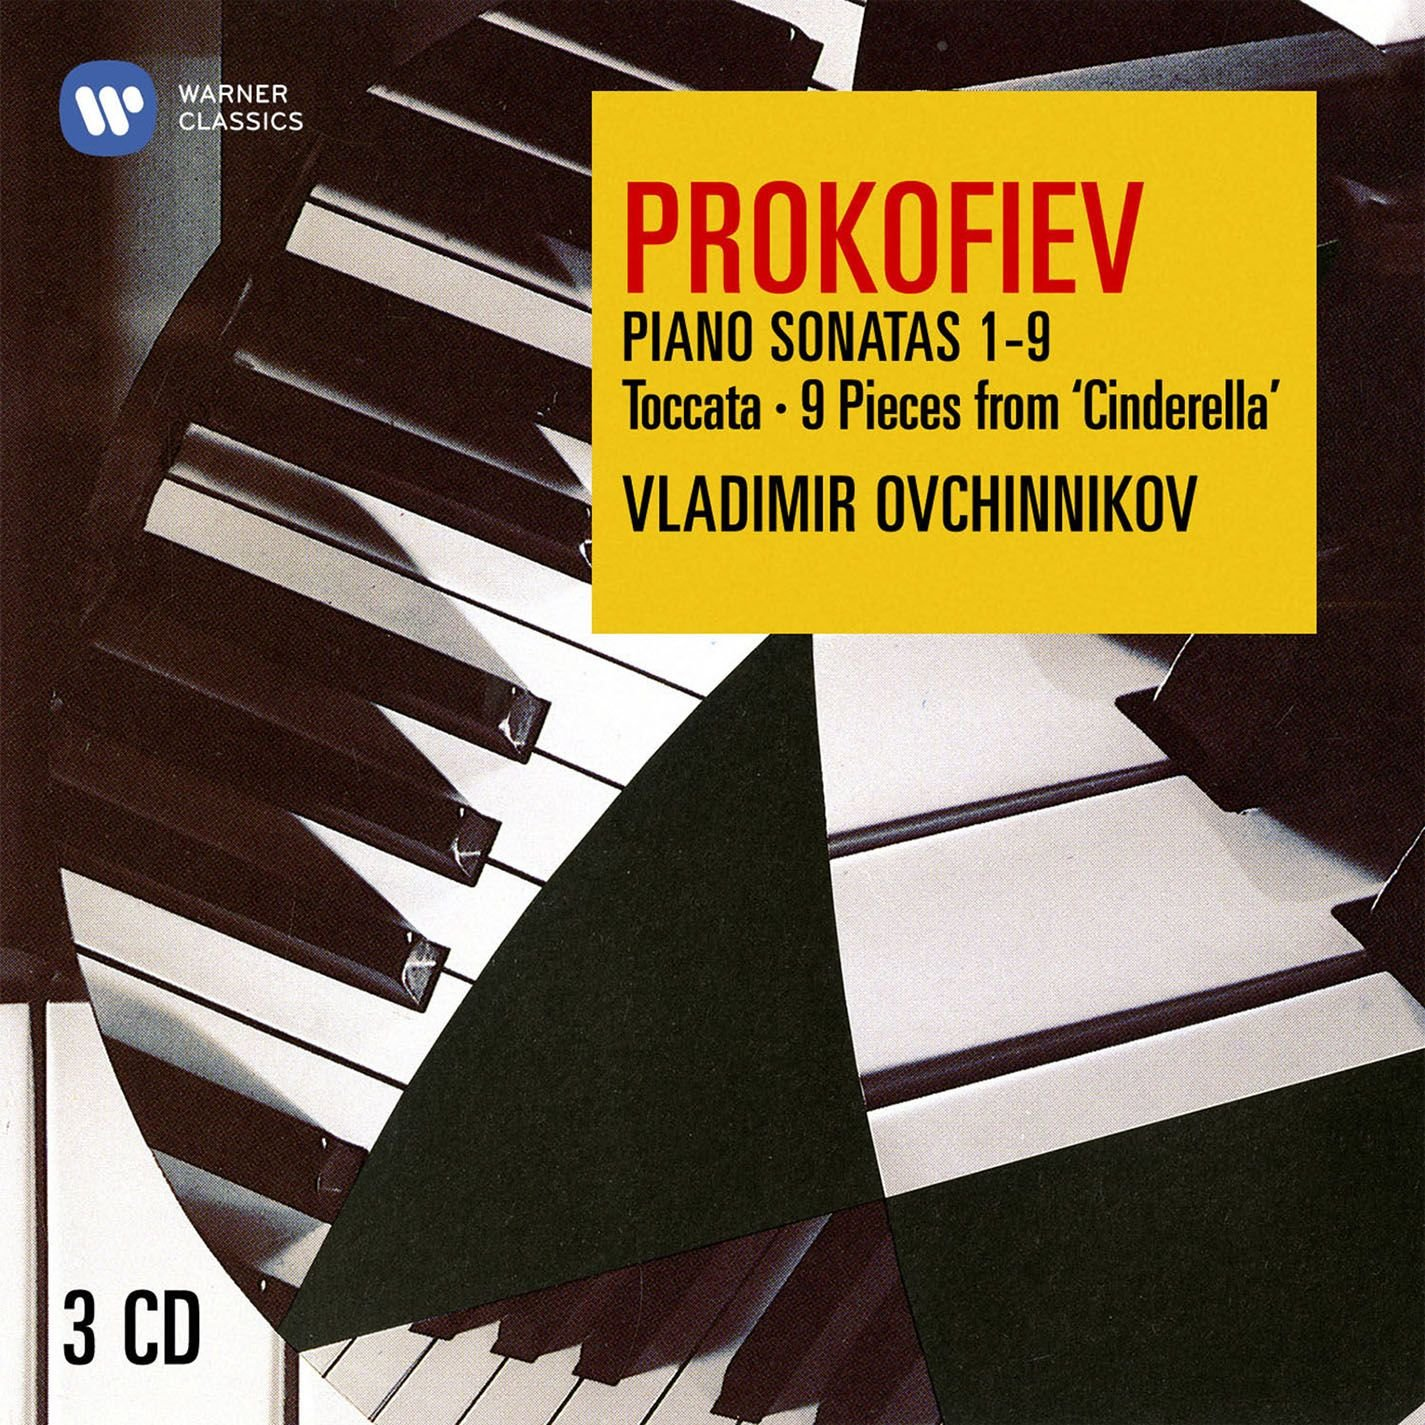 Prokofiev Sonates pour piano - Page 2 81MmkOy1BDL